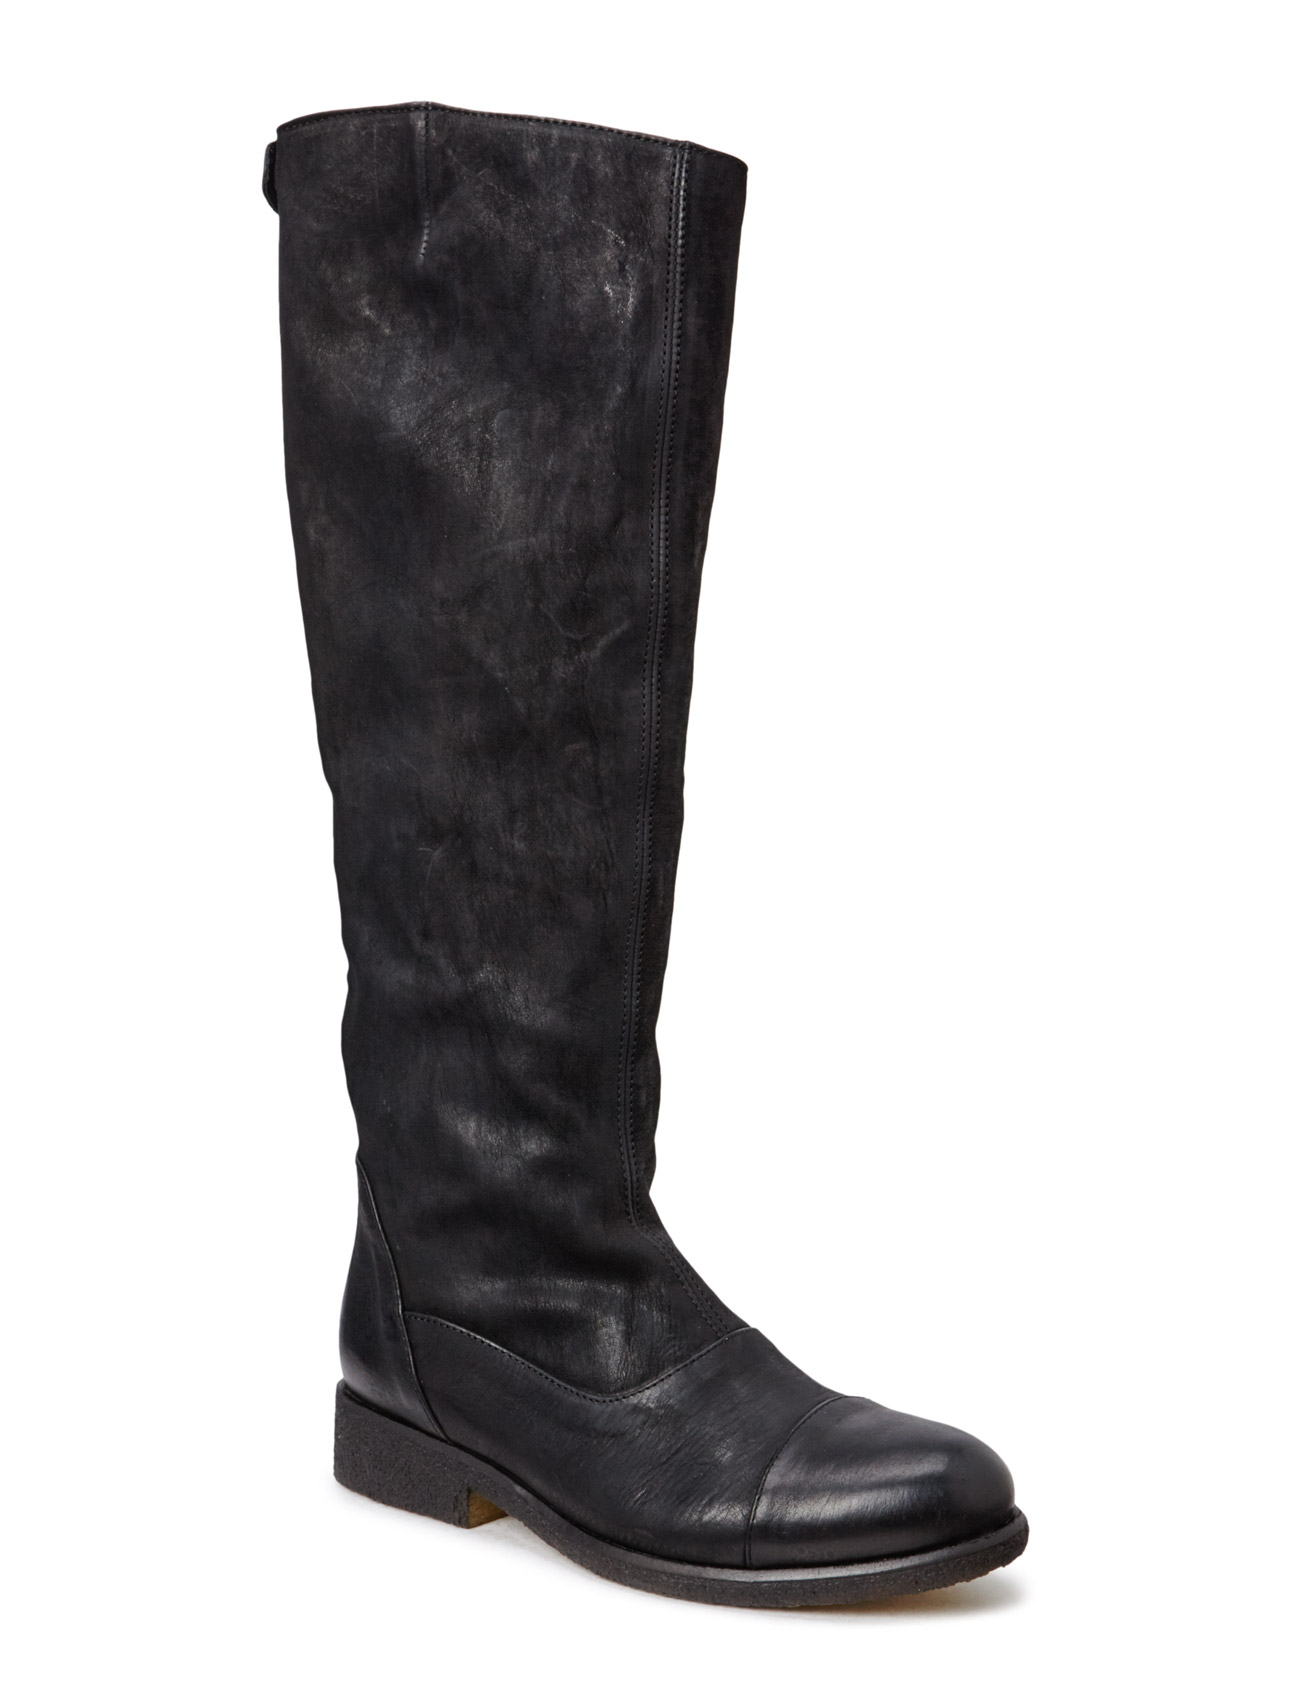 Boots Crepe Sole